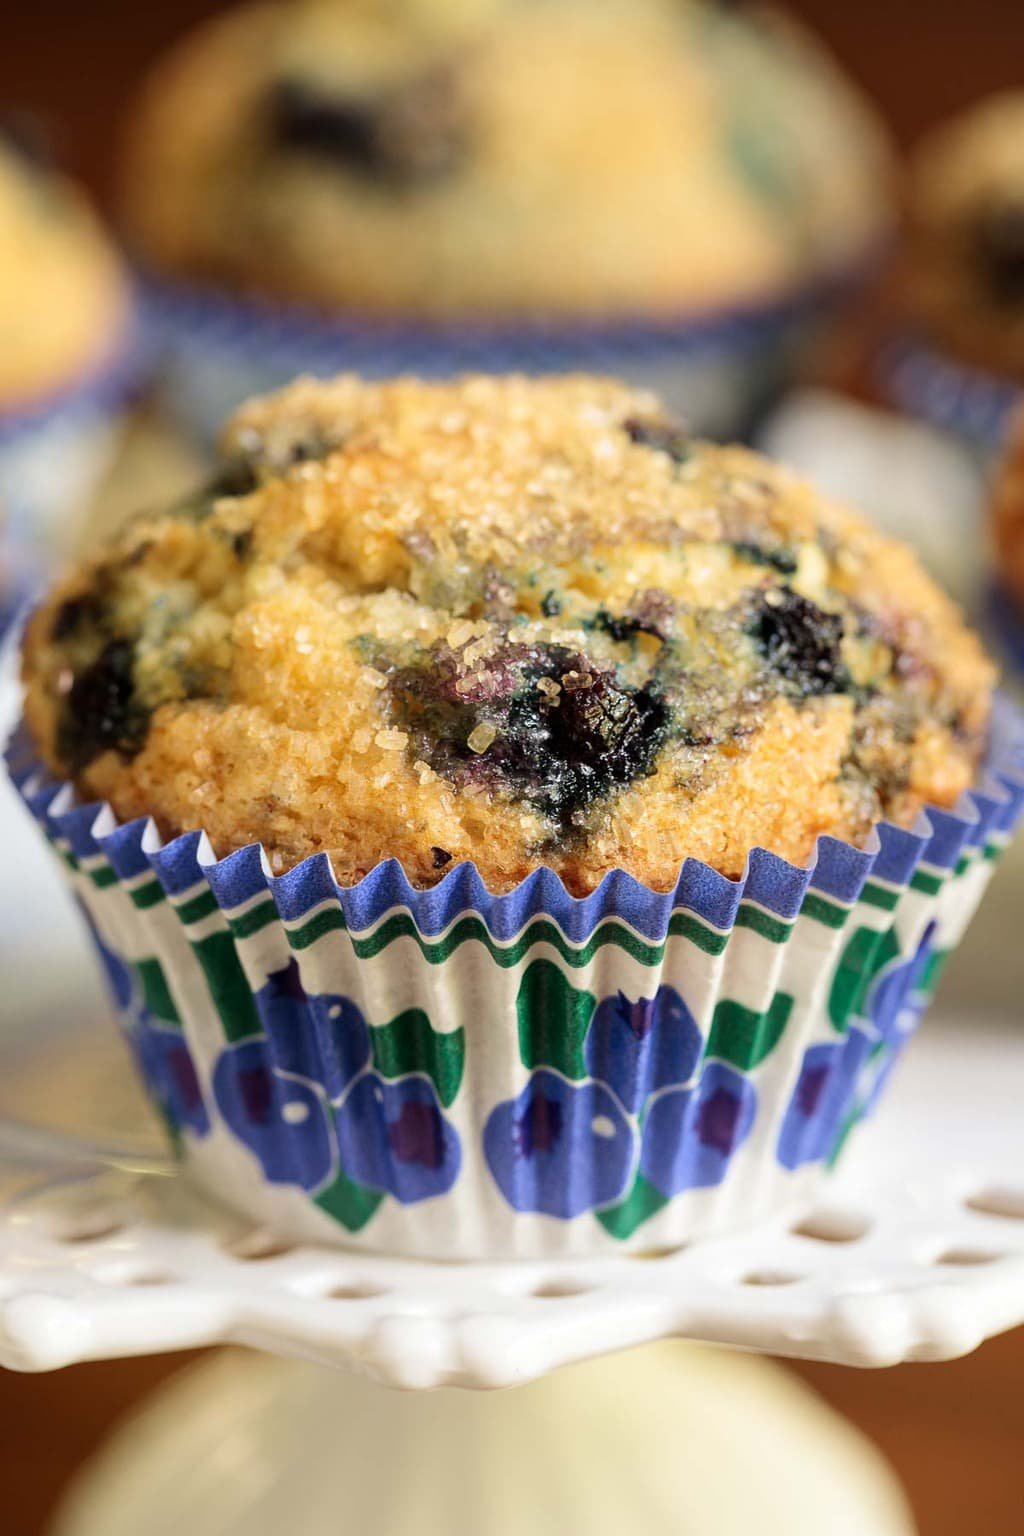 Closeup photo of a Copycat Starbuck's Blueberry Muffin in a blue, green and white patterned cupcake liner.